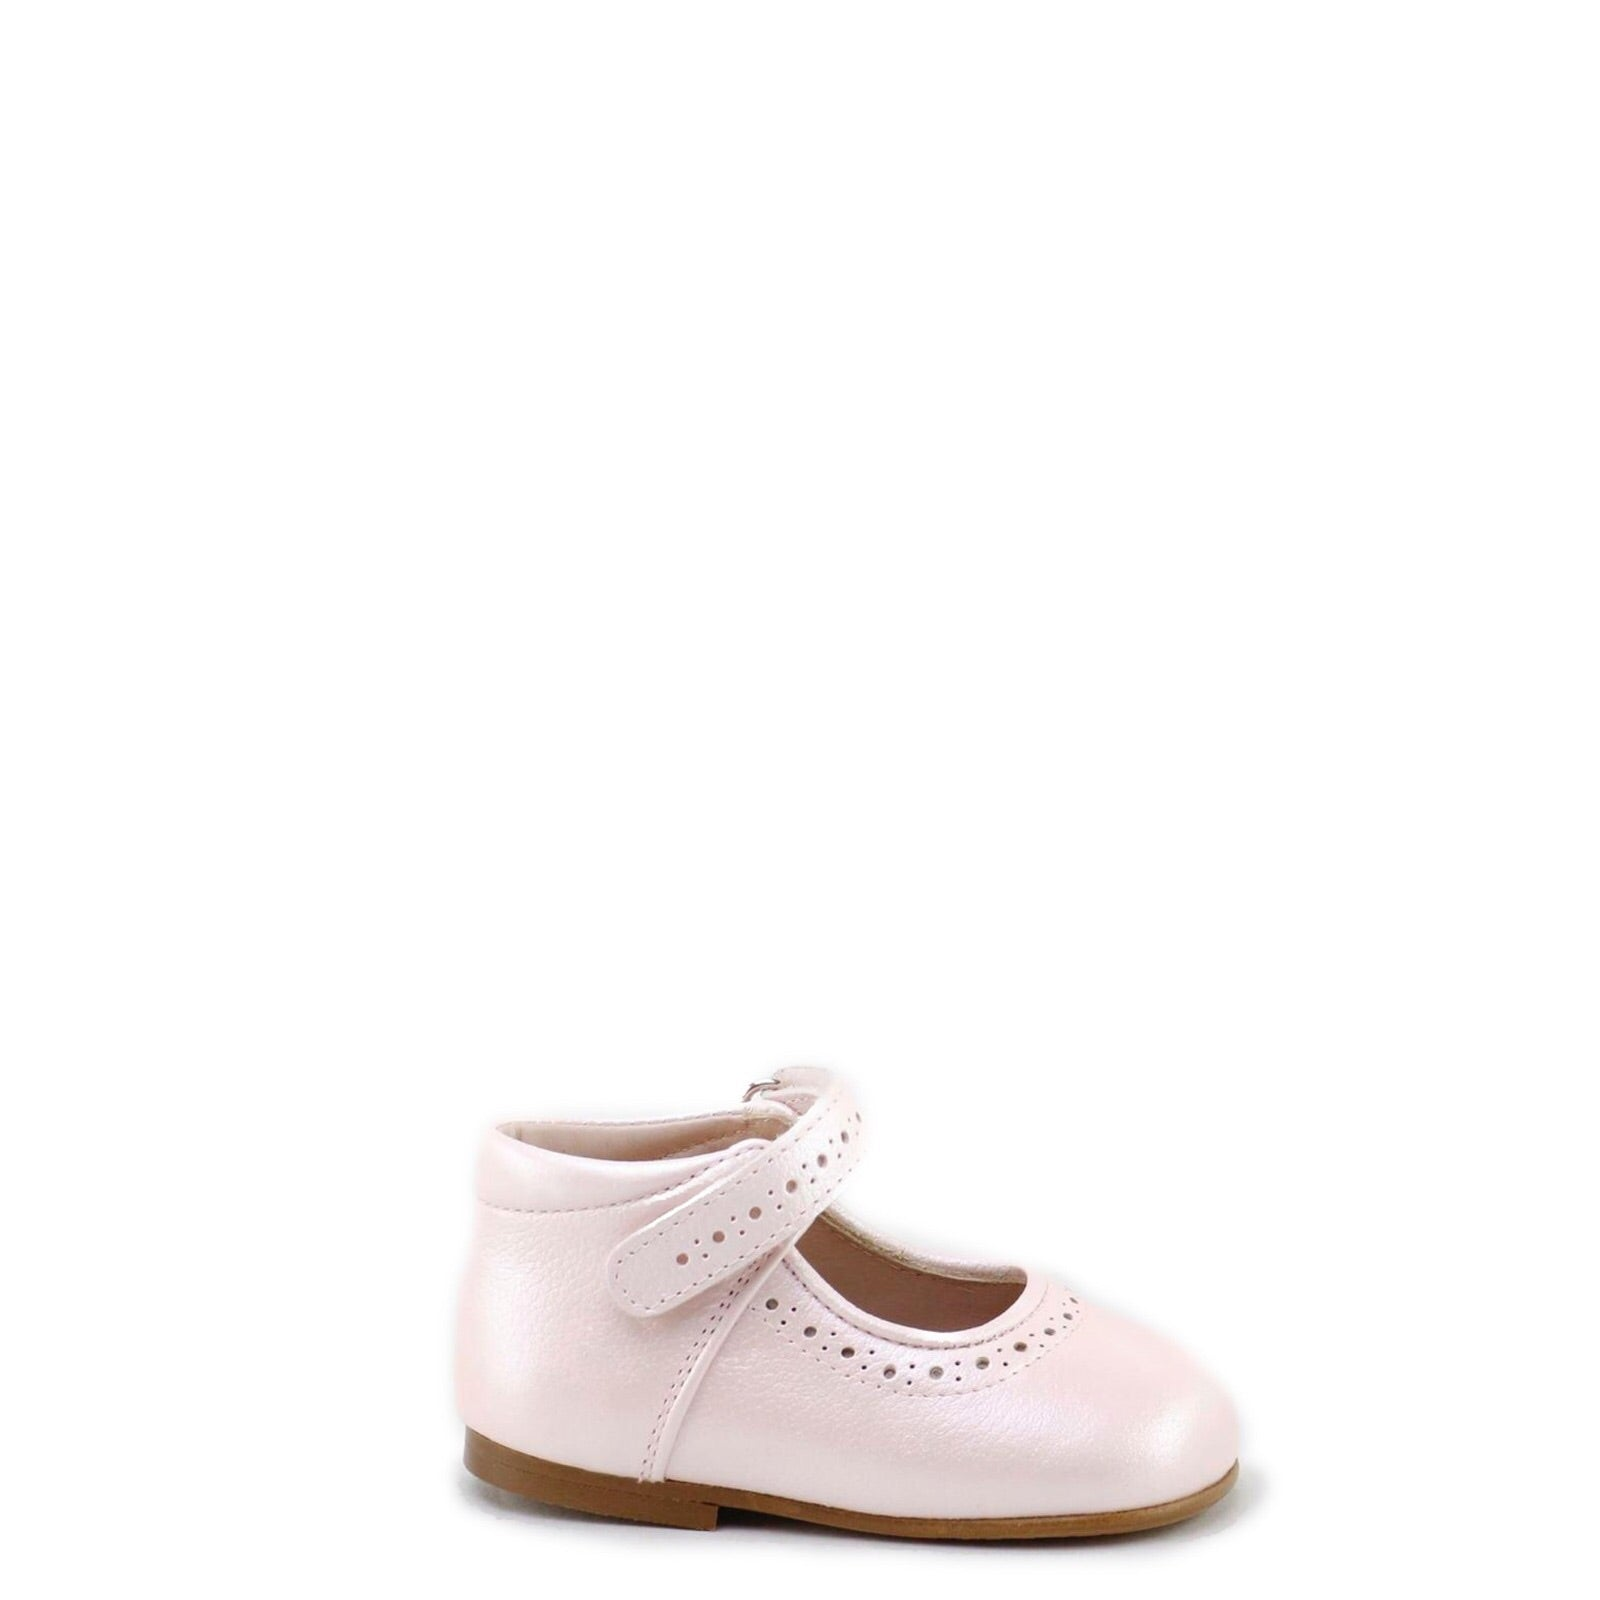 Papanatas Pale Pink Pebbled Baby Shoe-Tassel Children Shoes